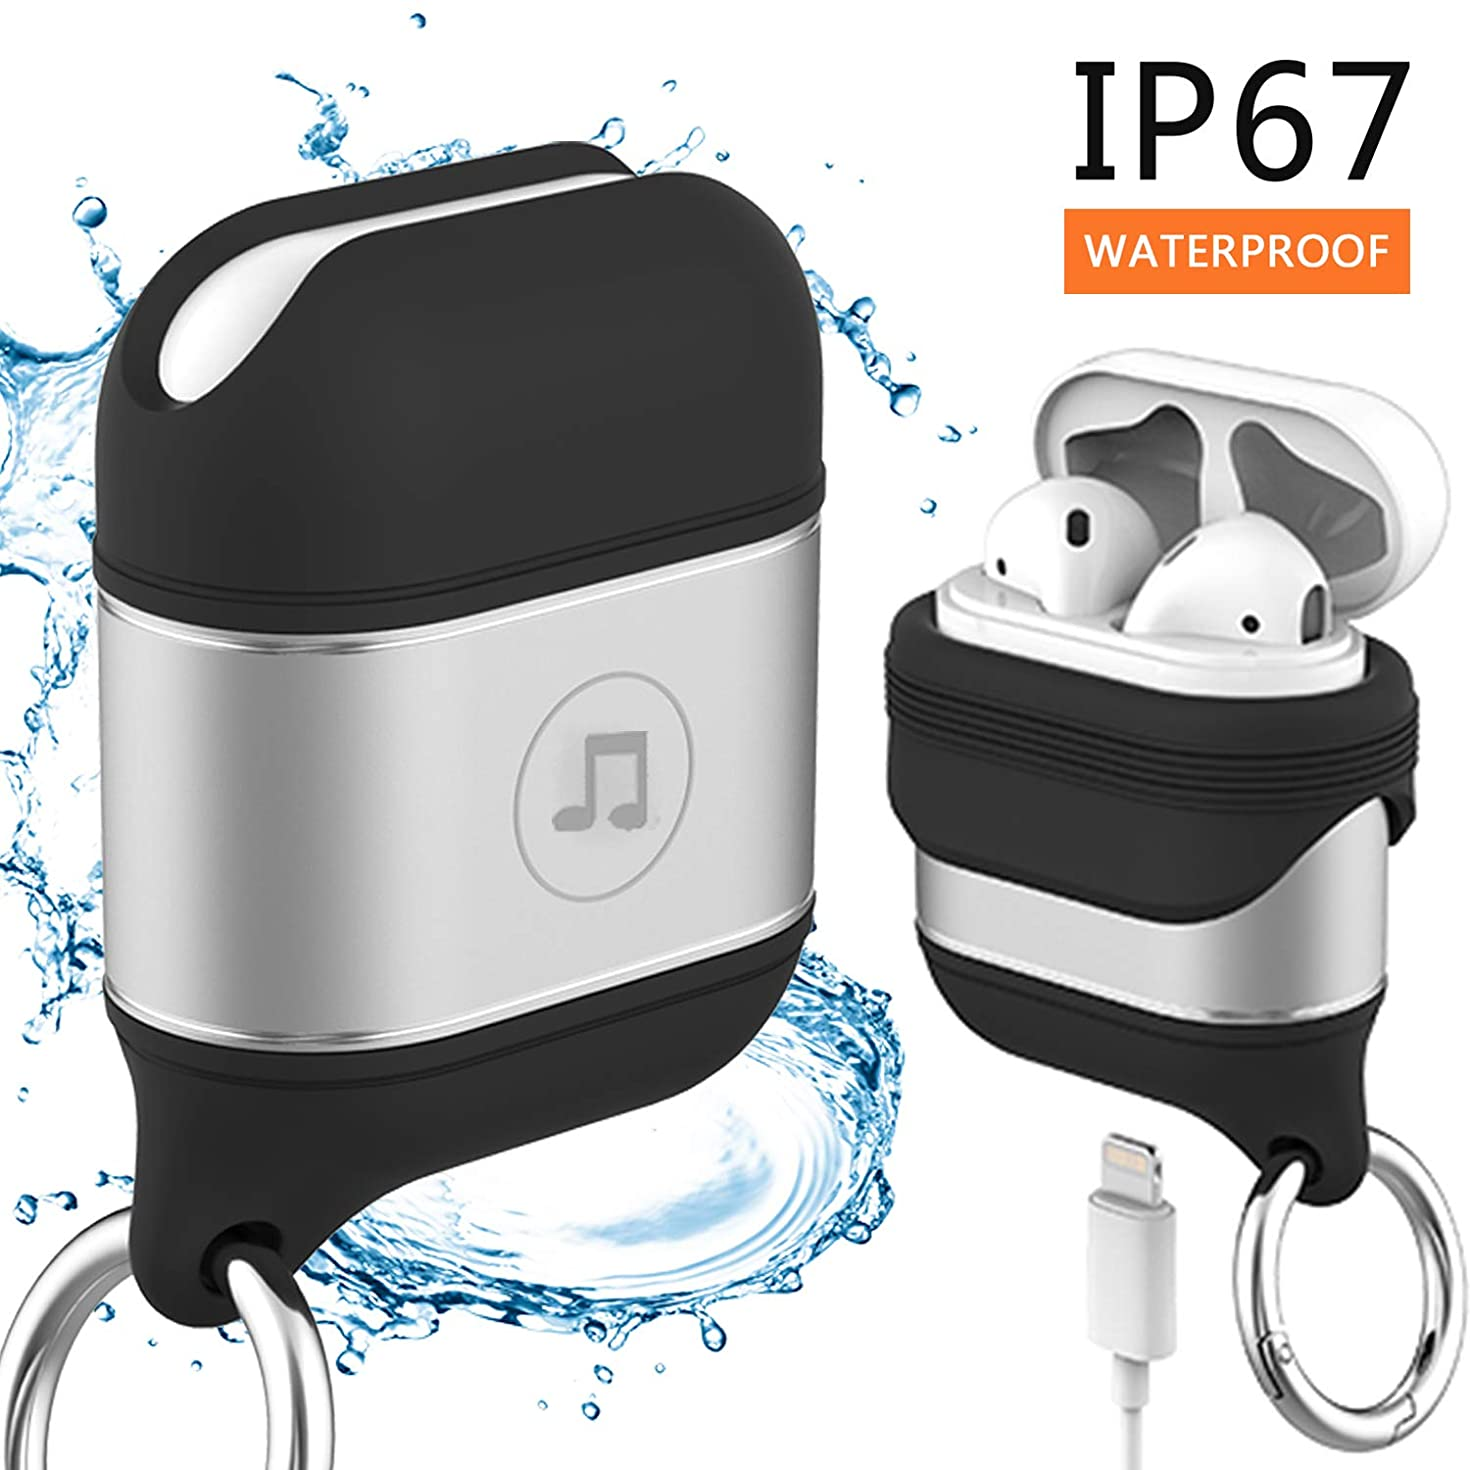 Venswell Compatible Airpods Case, Waterproof Premium Soft Silicone&Aluminium Alloy Material Airpods Cover, Protective Shockproof Case Cover and Skin with Anti-Lost Keychain for Airpods 1 & AirPods 2?